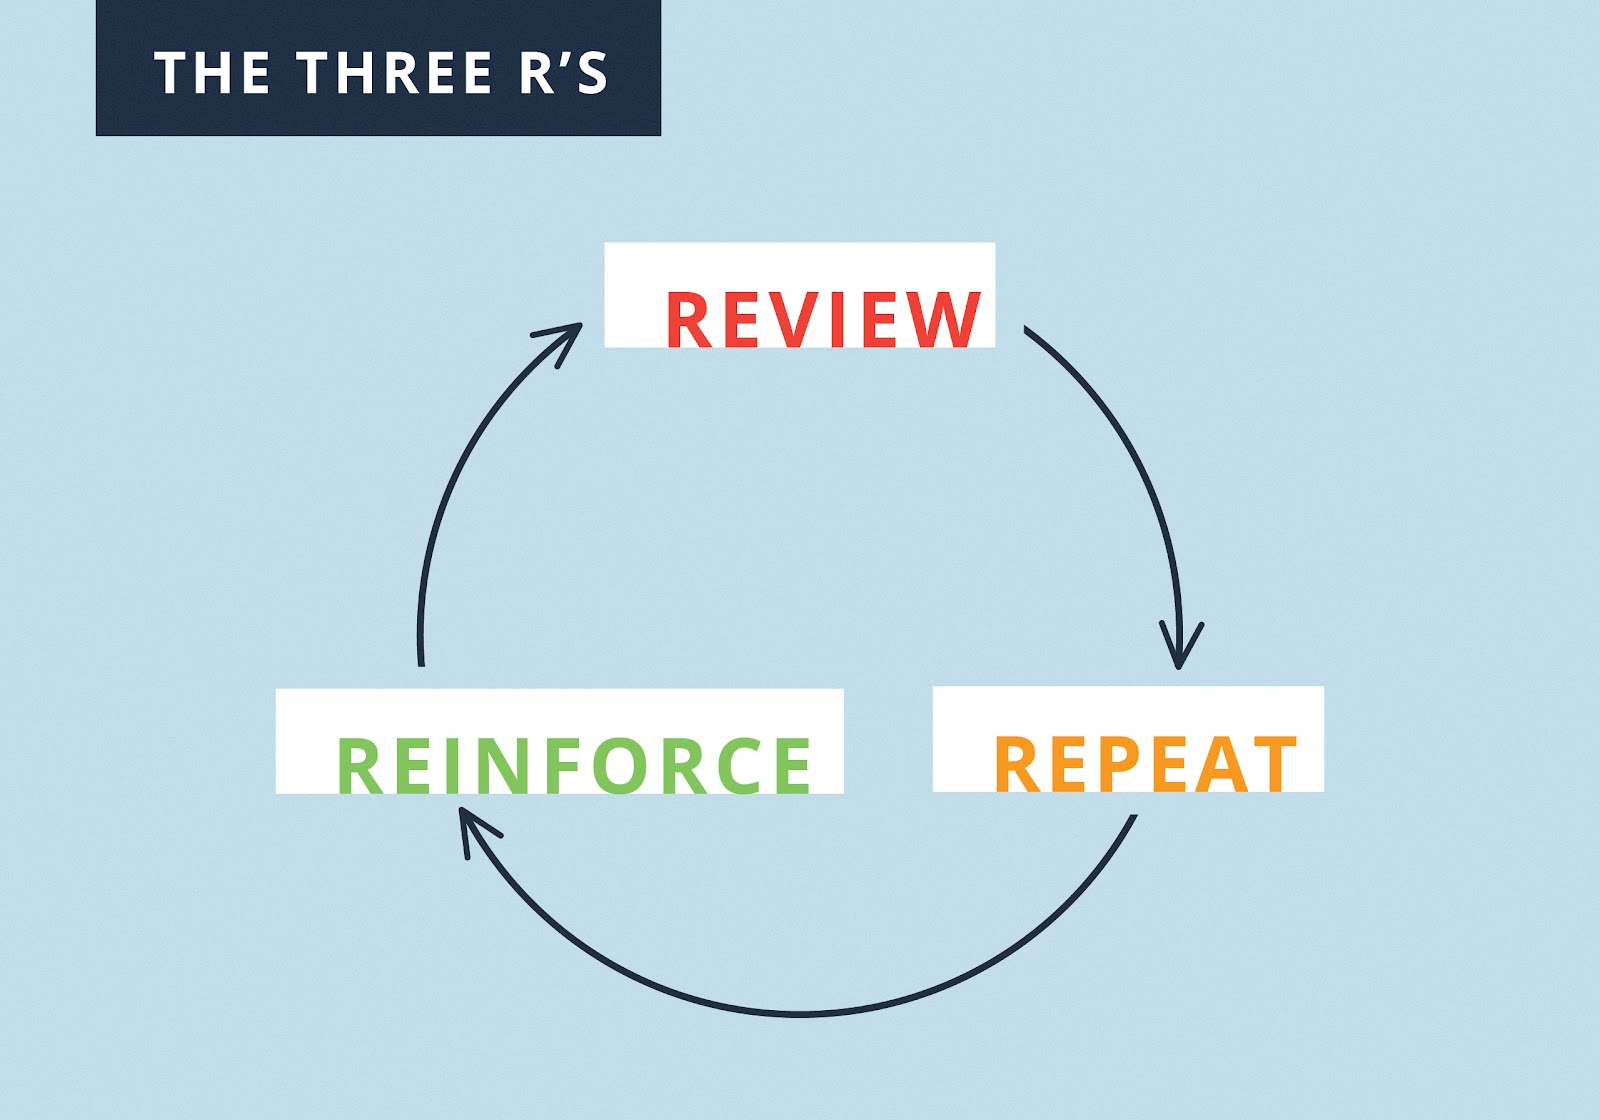 Review, Reinforce, Repeat